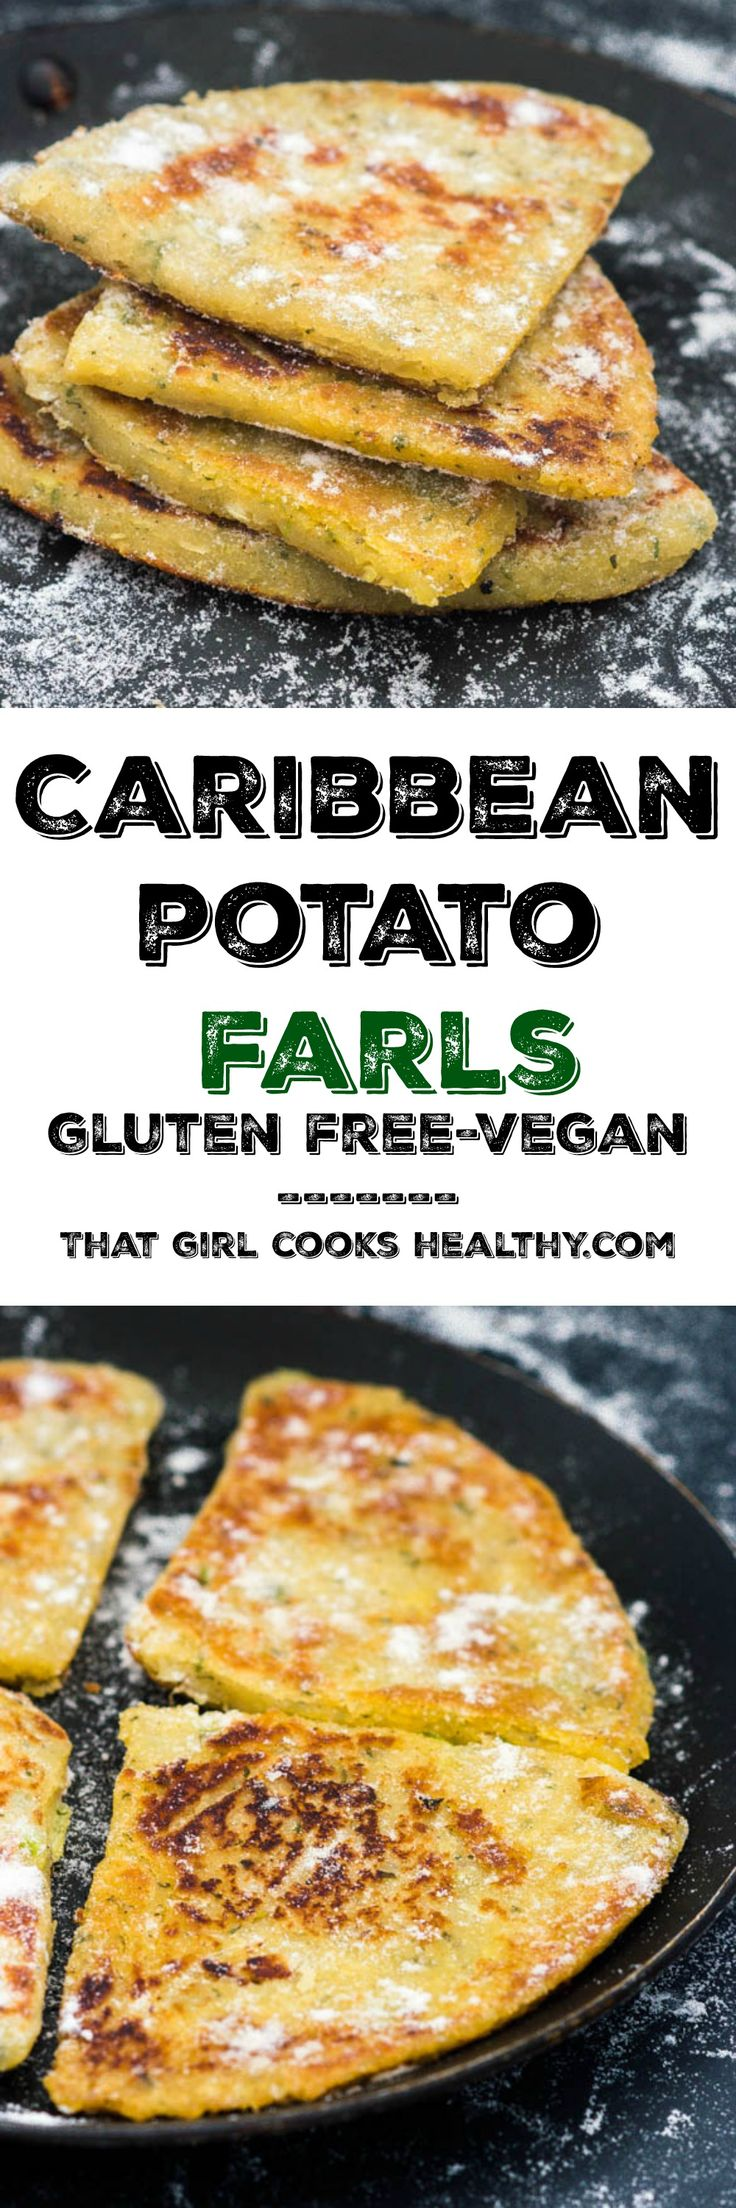 Potato farls recipe - where the Caribbean meets Ireland (vegan/gluten free)